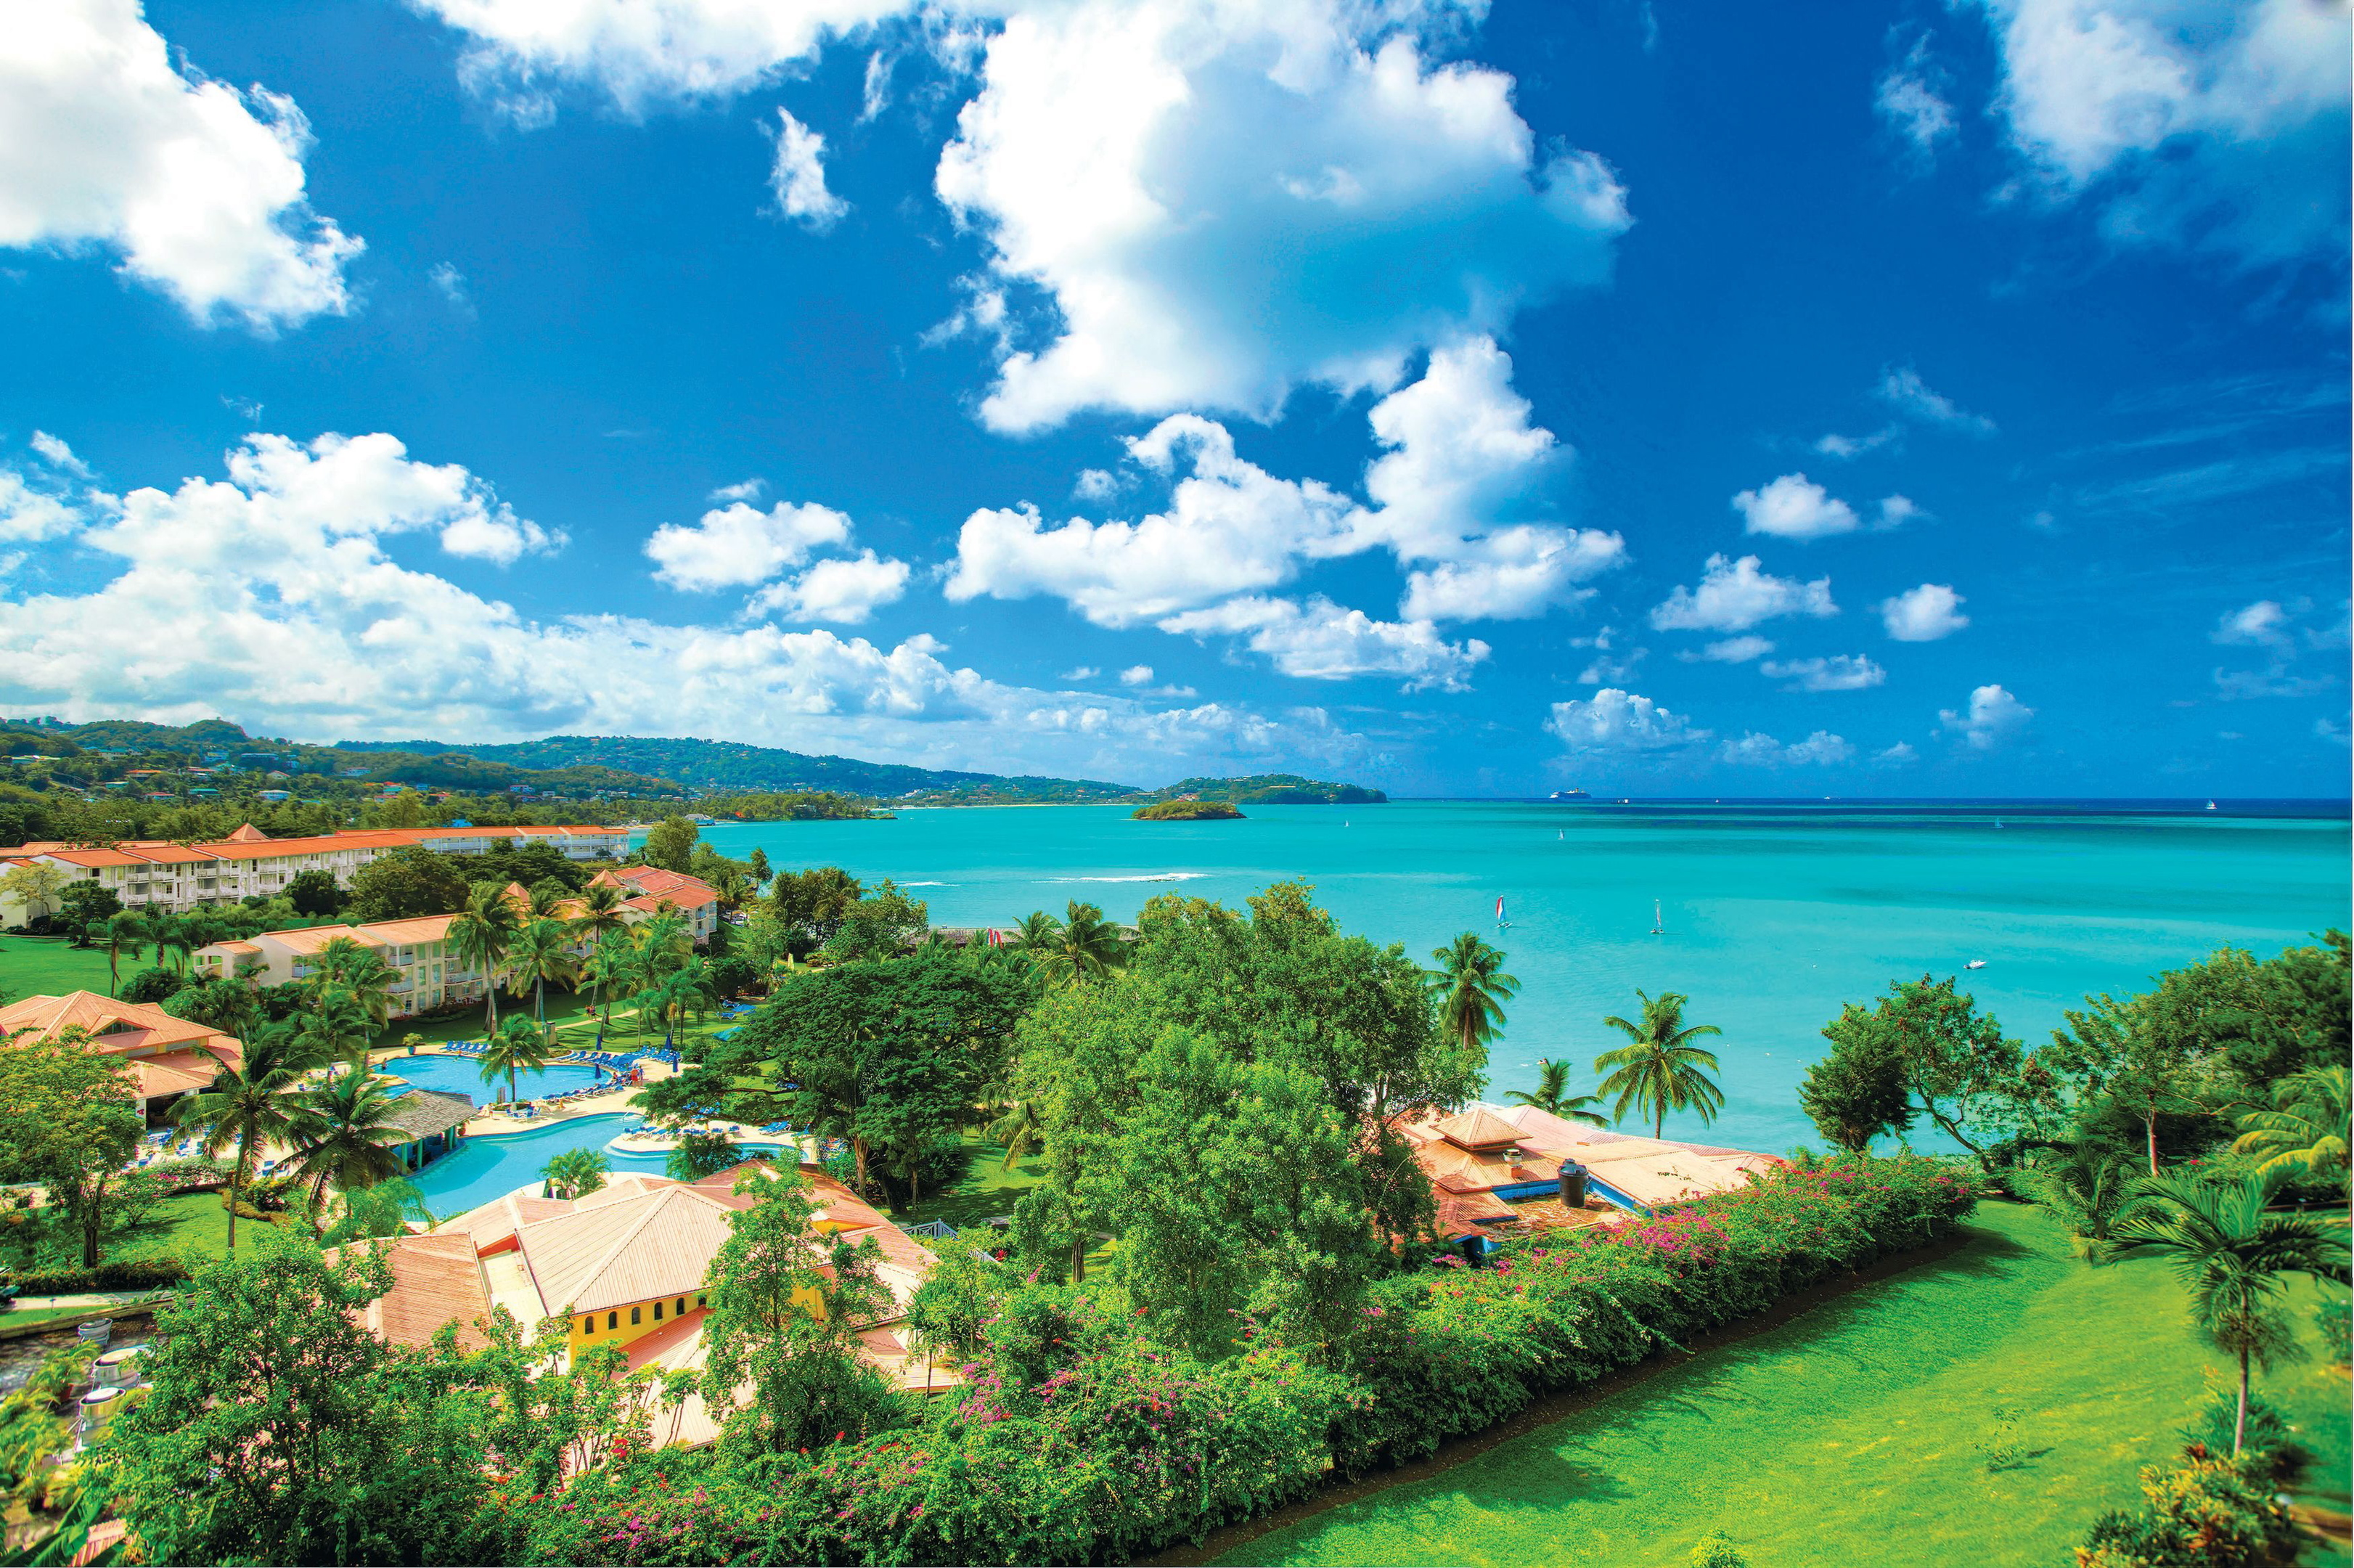 The new partnership will make it easier for travellers to reach far-flung destinations including St Lucia.